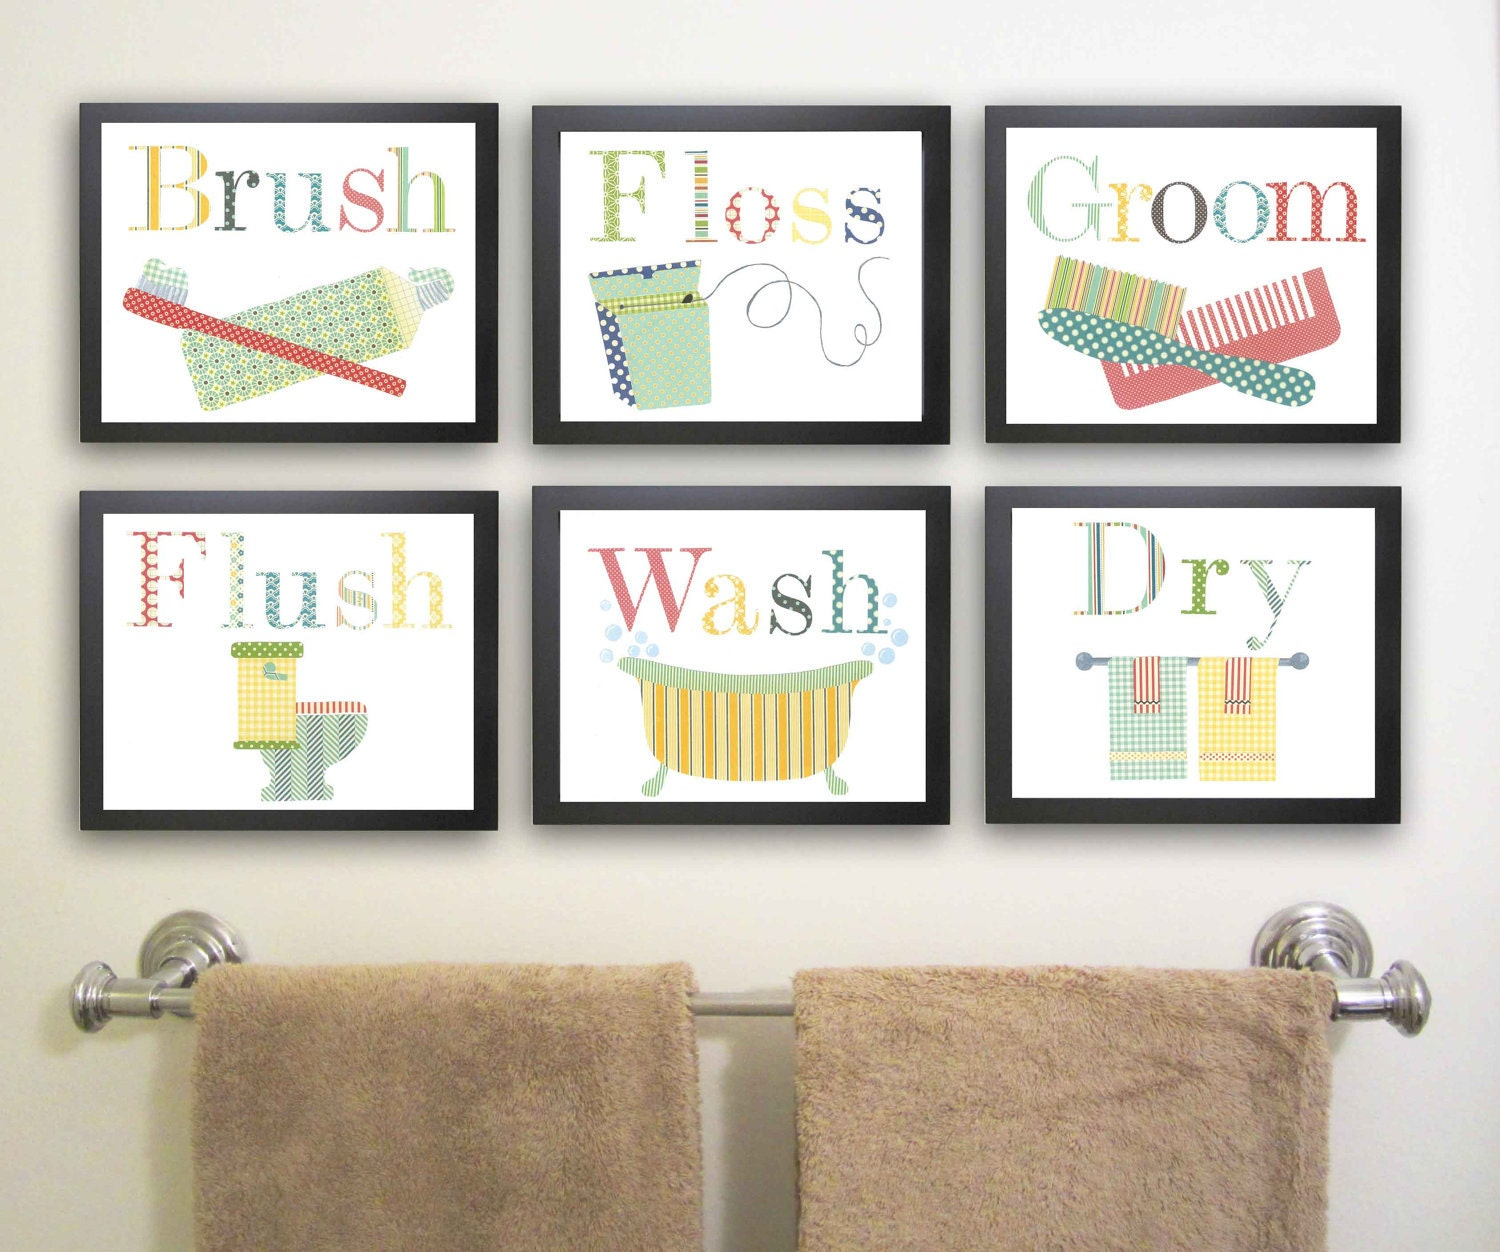 Popular items for bathroom manners on Etsy